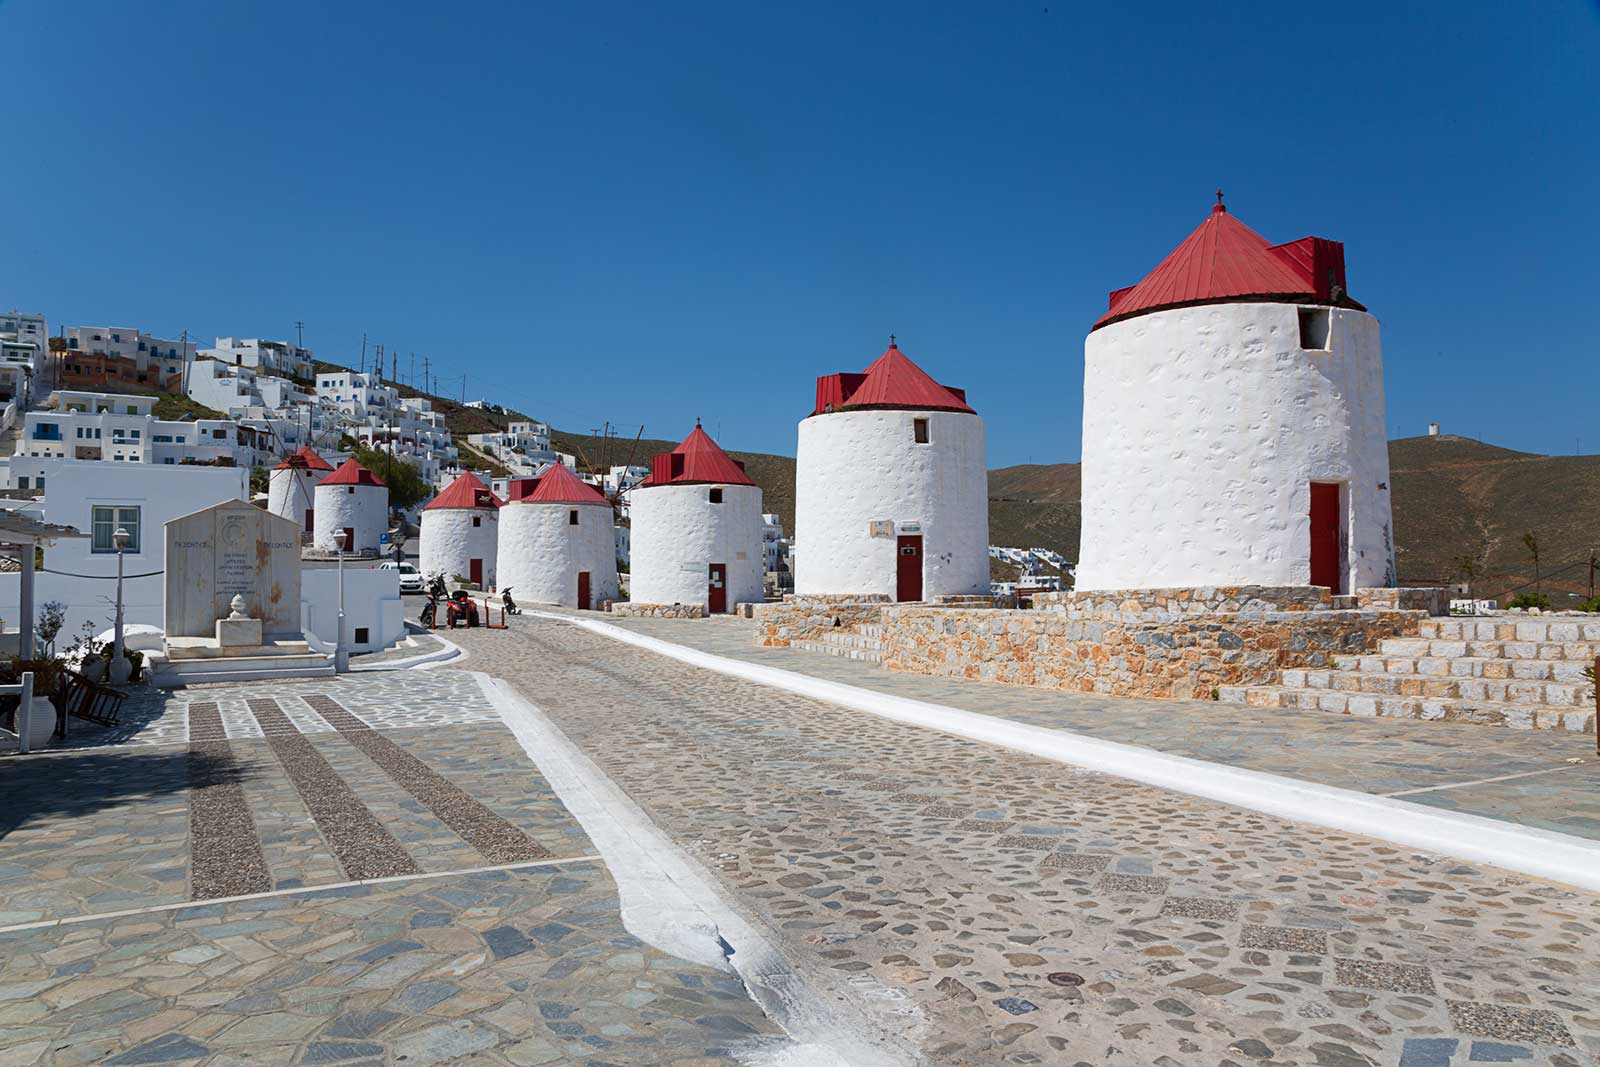 In the main square of Chora, you will find eight traditional picturesque windmills.